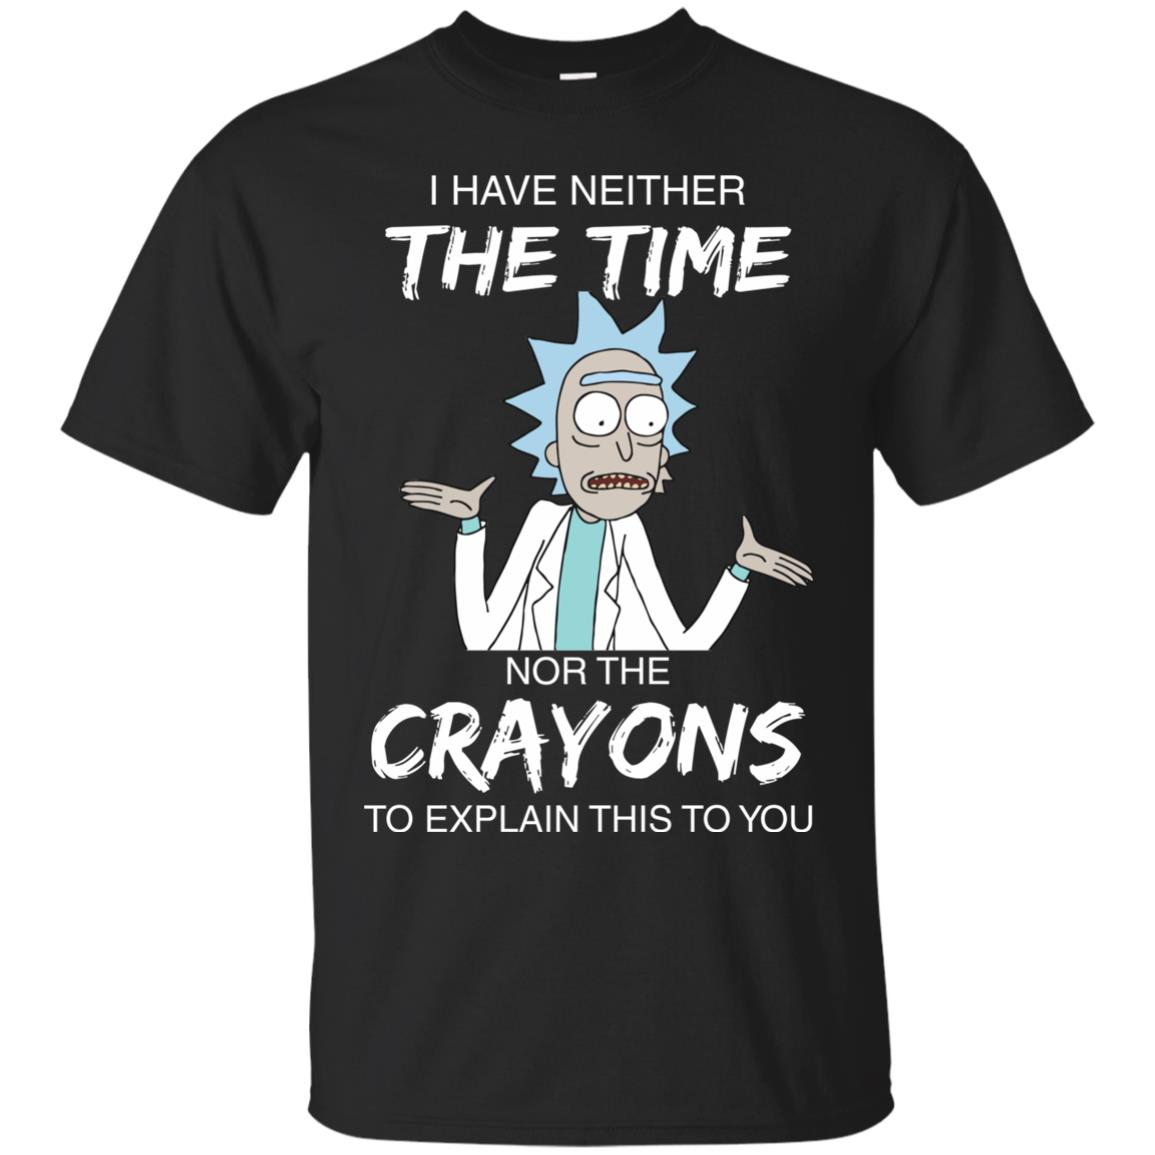 image 1105px Rick and Morty: I have Neither Nor The Crayons To Explanin This To You T Shirts